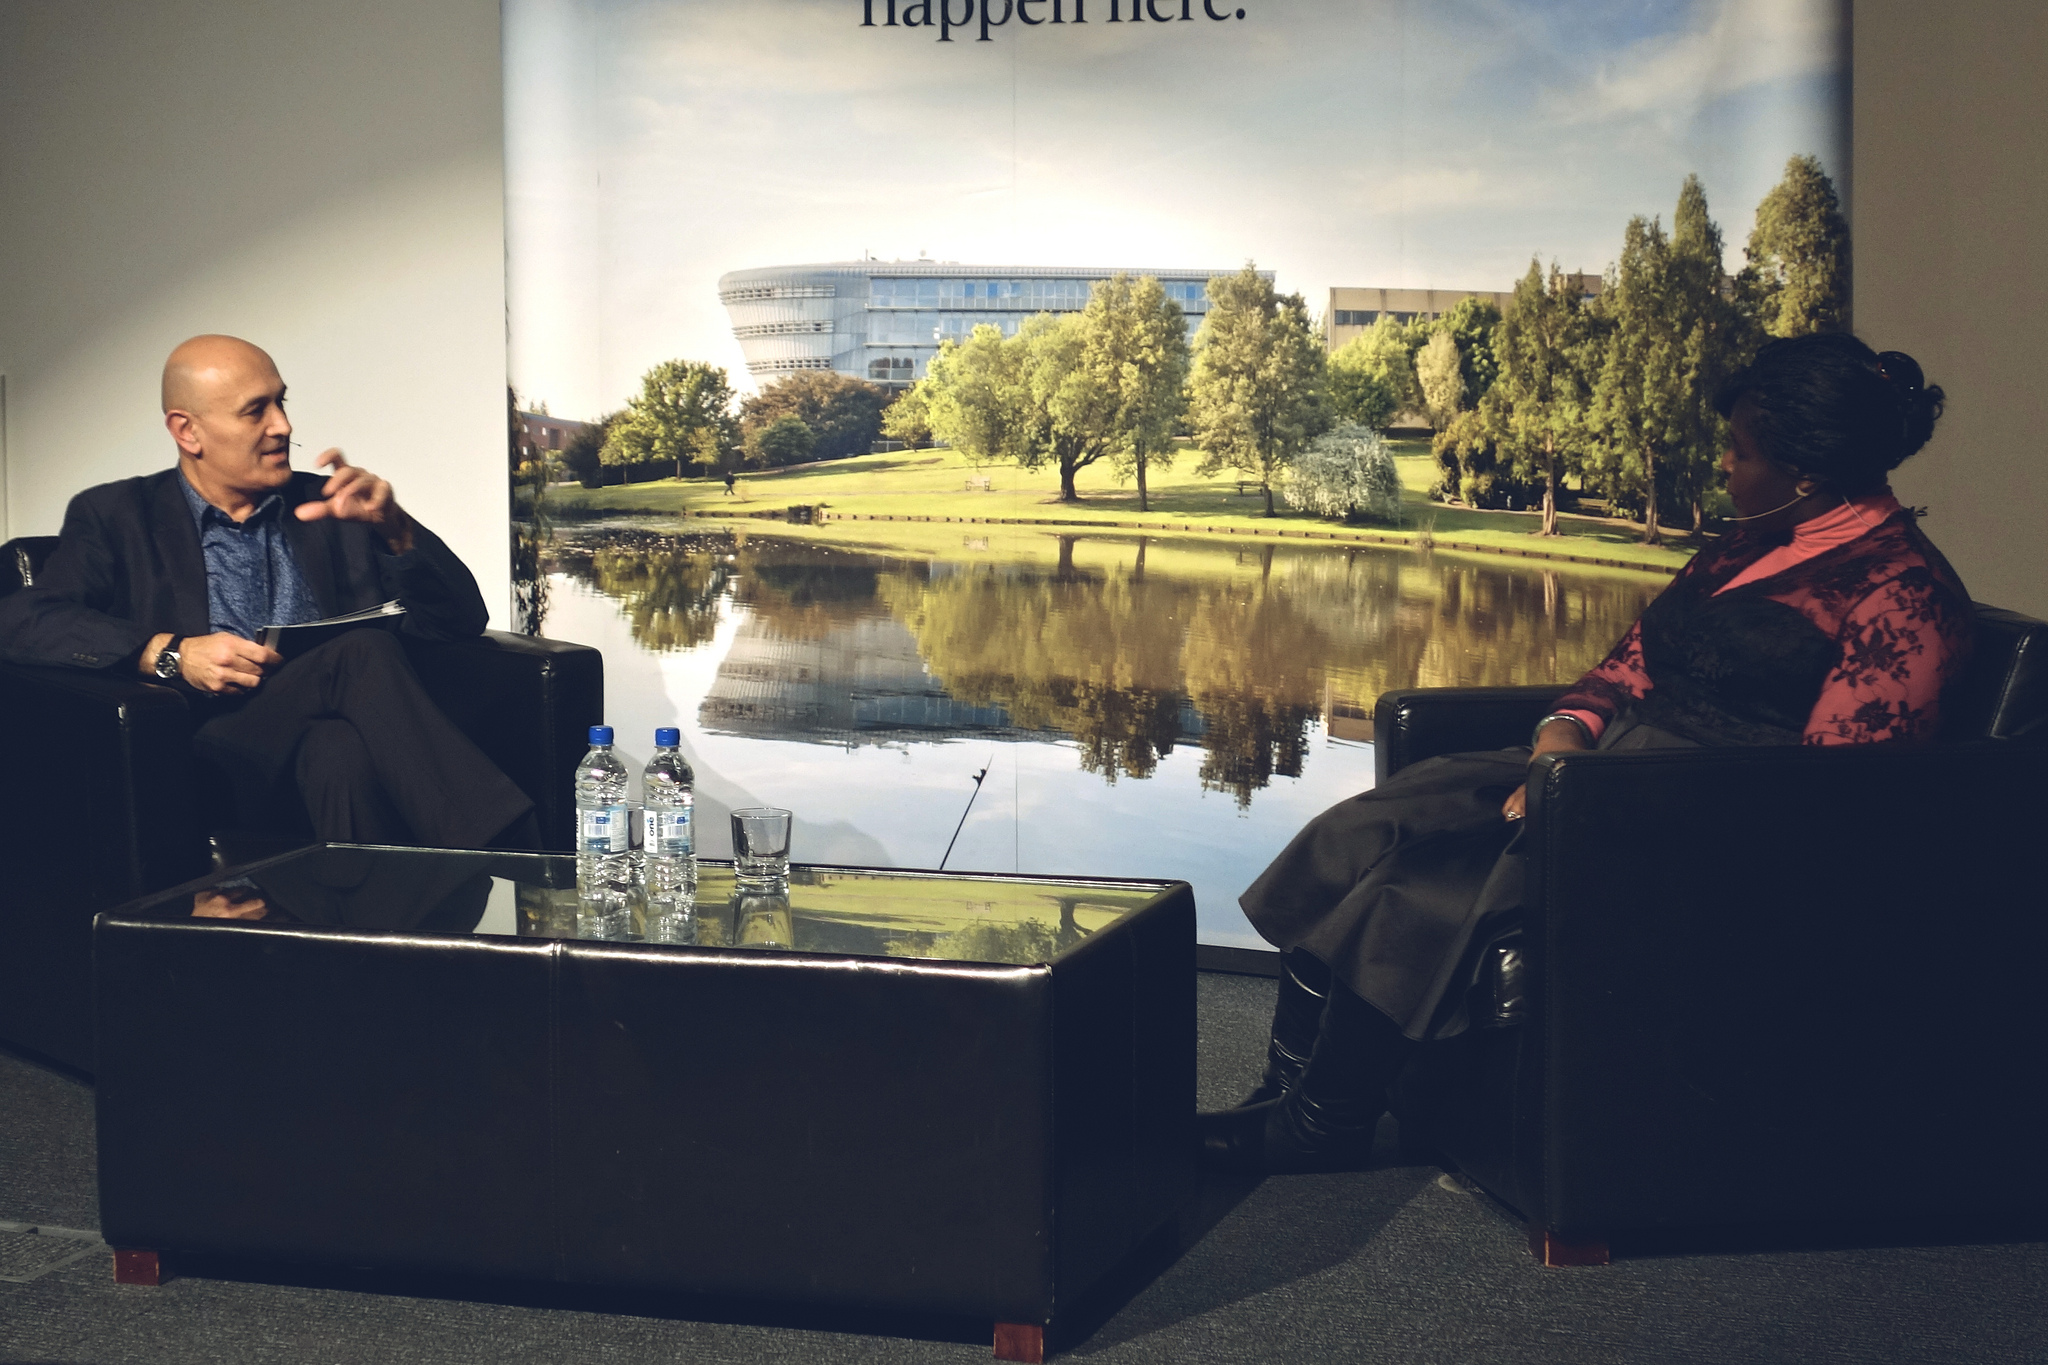 Prof Jim Al-Khalili interviewing Dr Maggie Aderin-Pocock at the University of Surrey on March 3, 2014